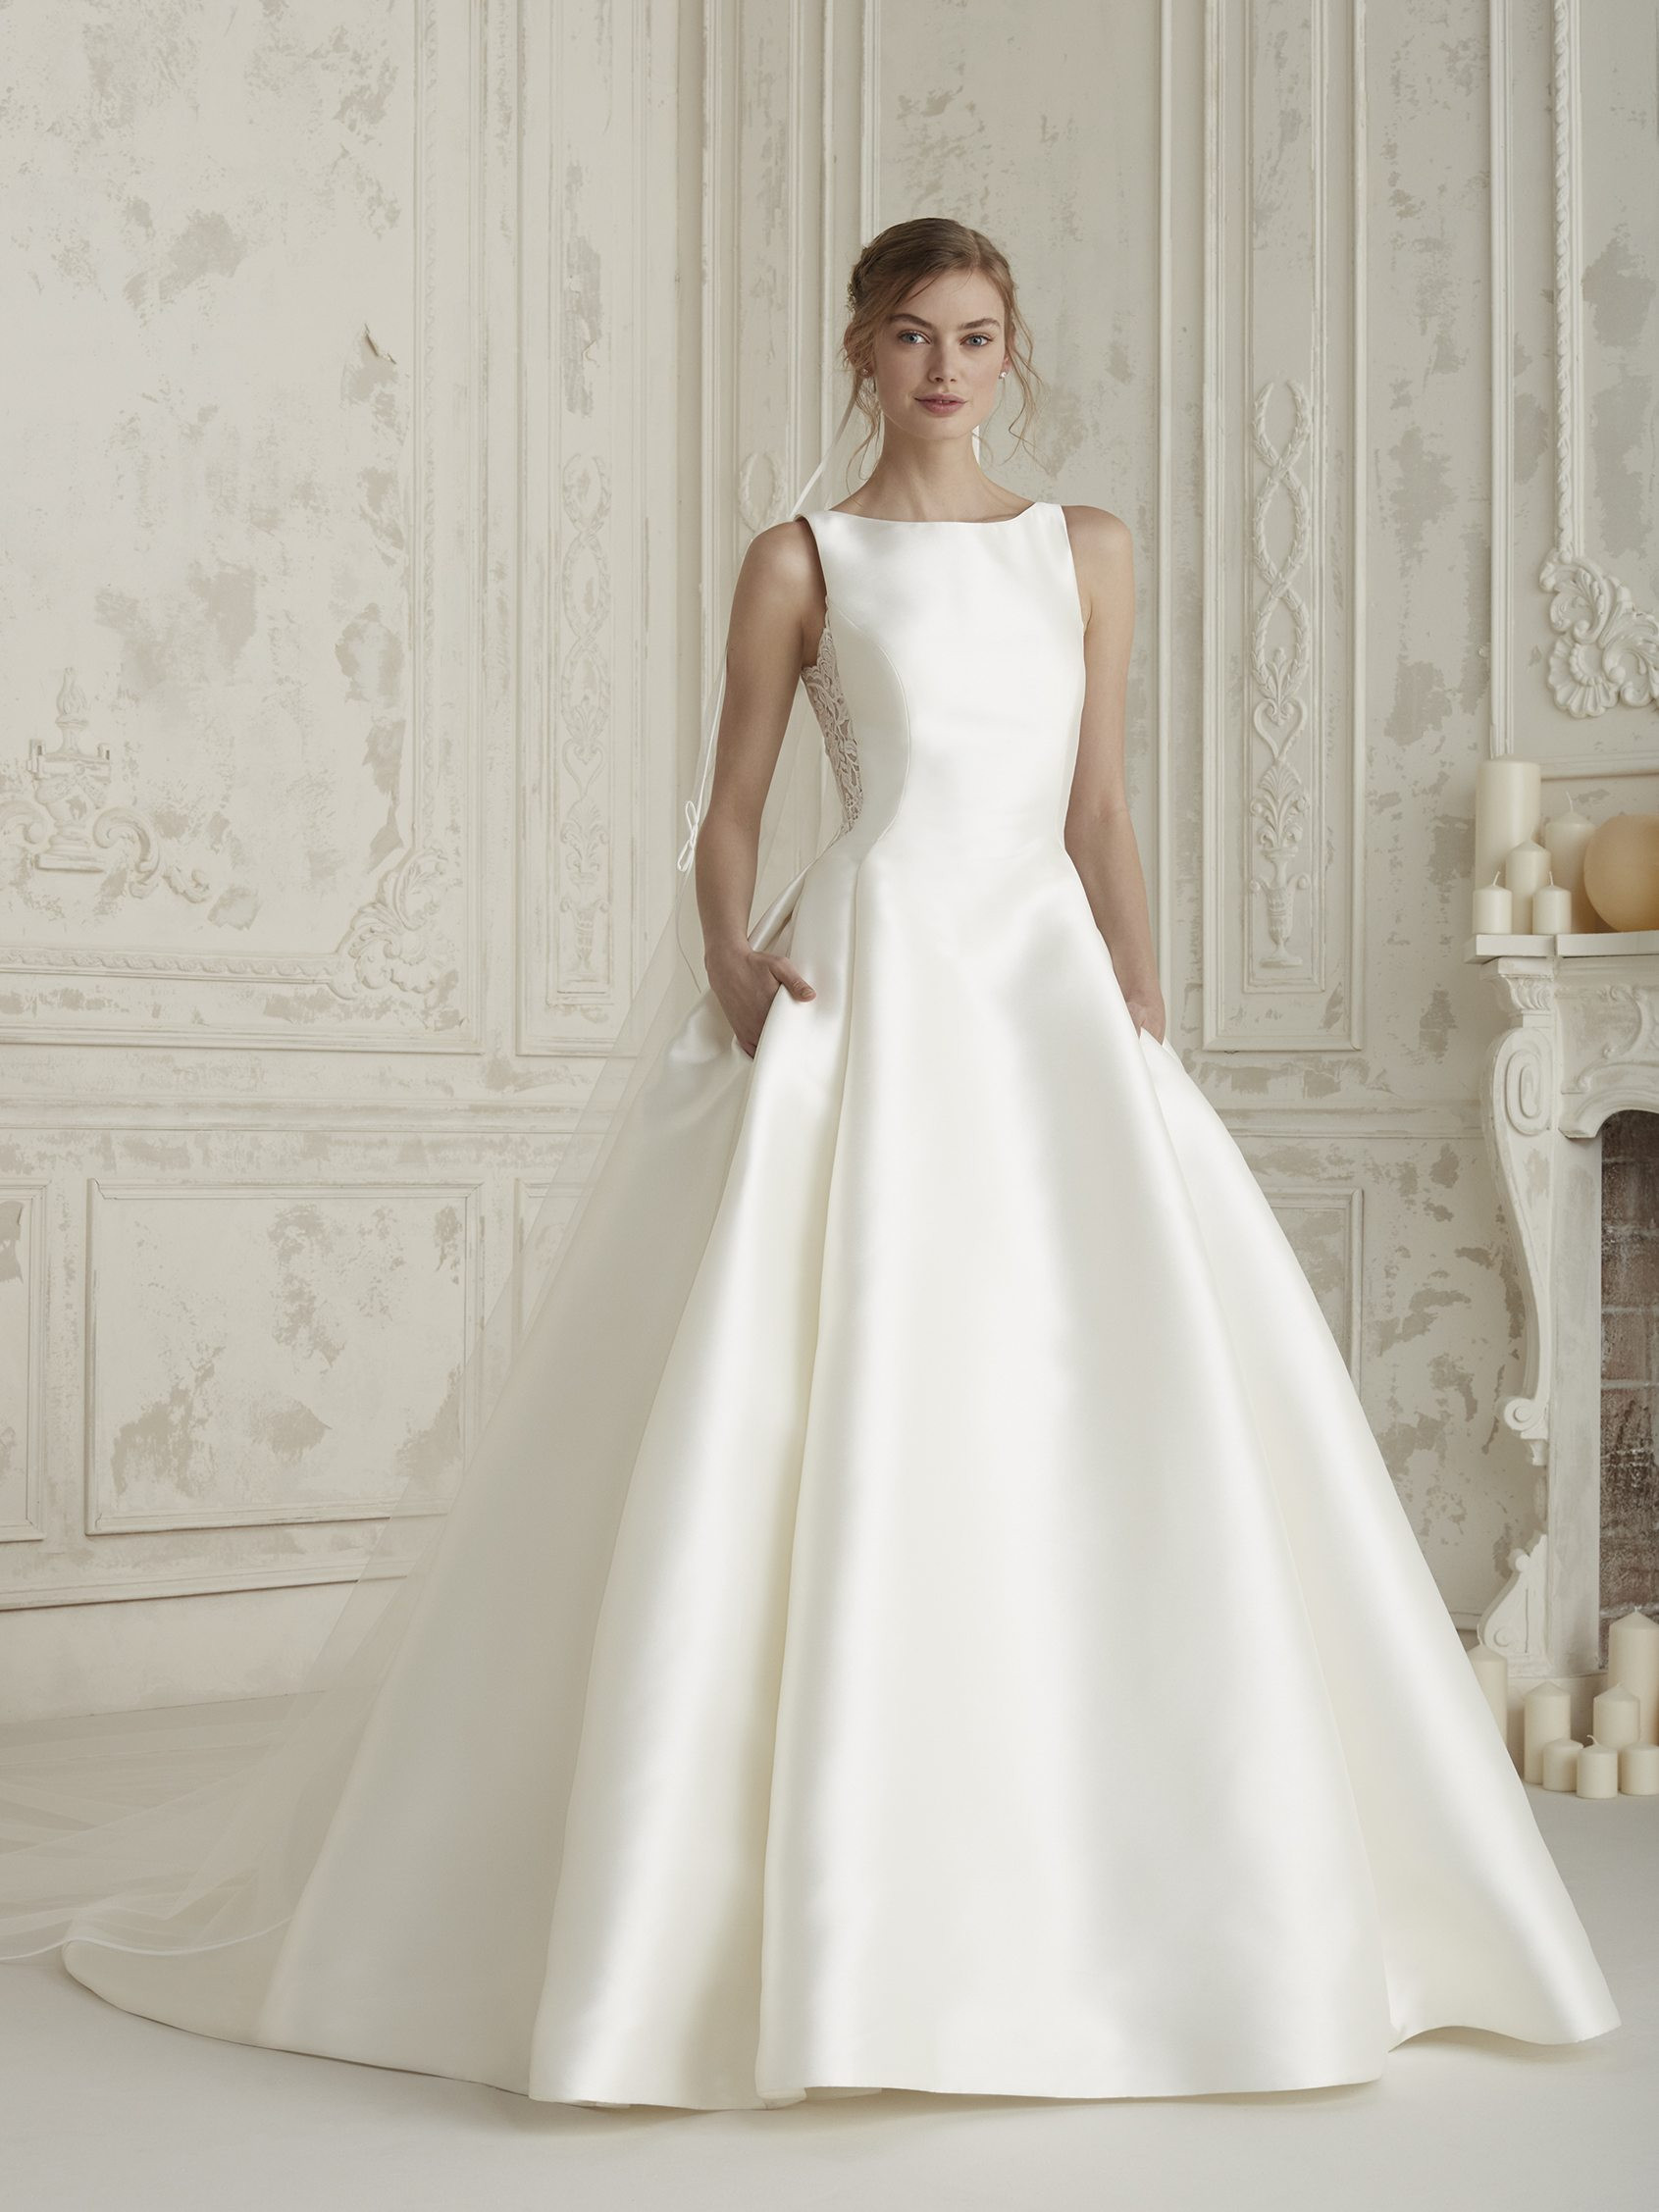 Elegant wedding dress with full skirt ELENCO | Pronovias